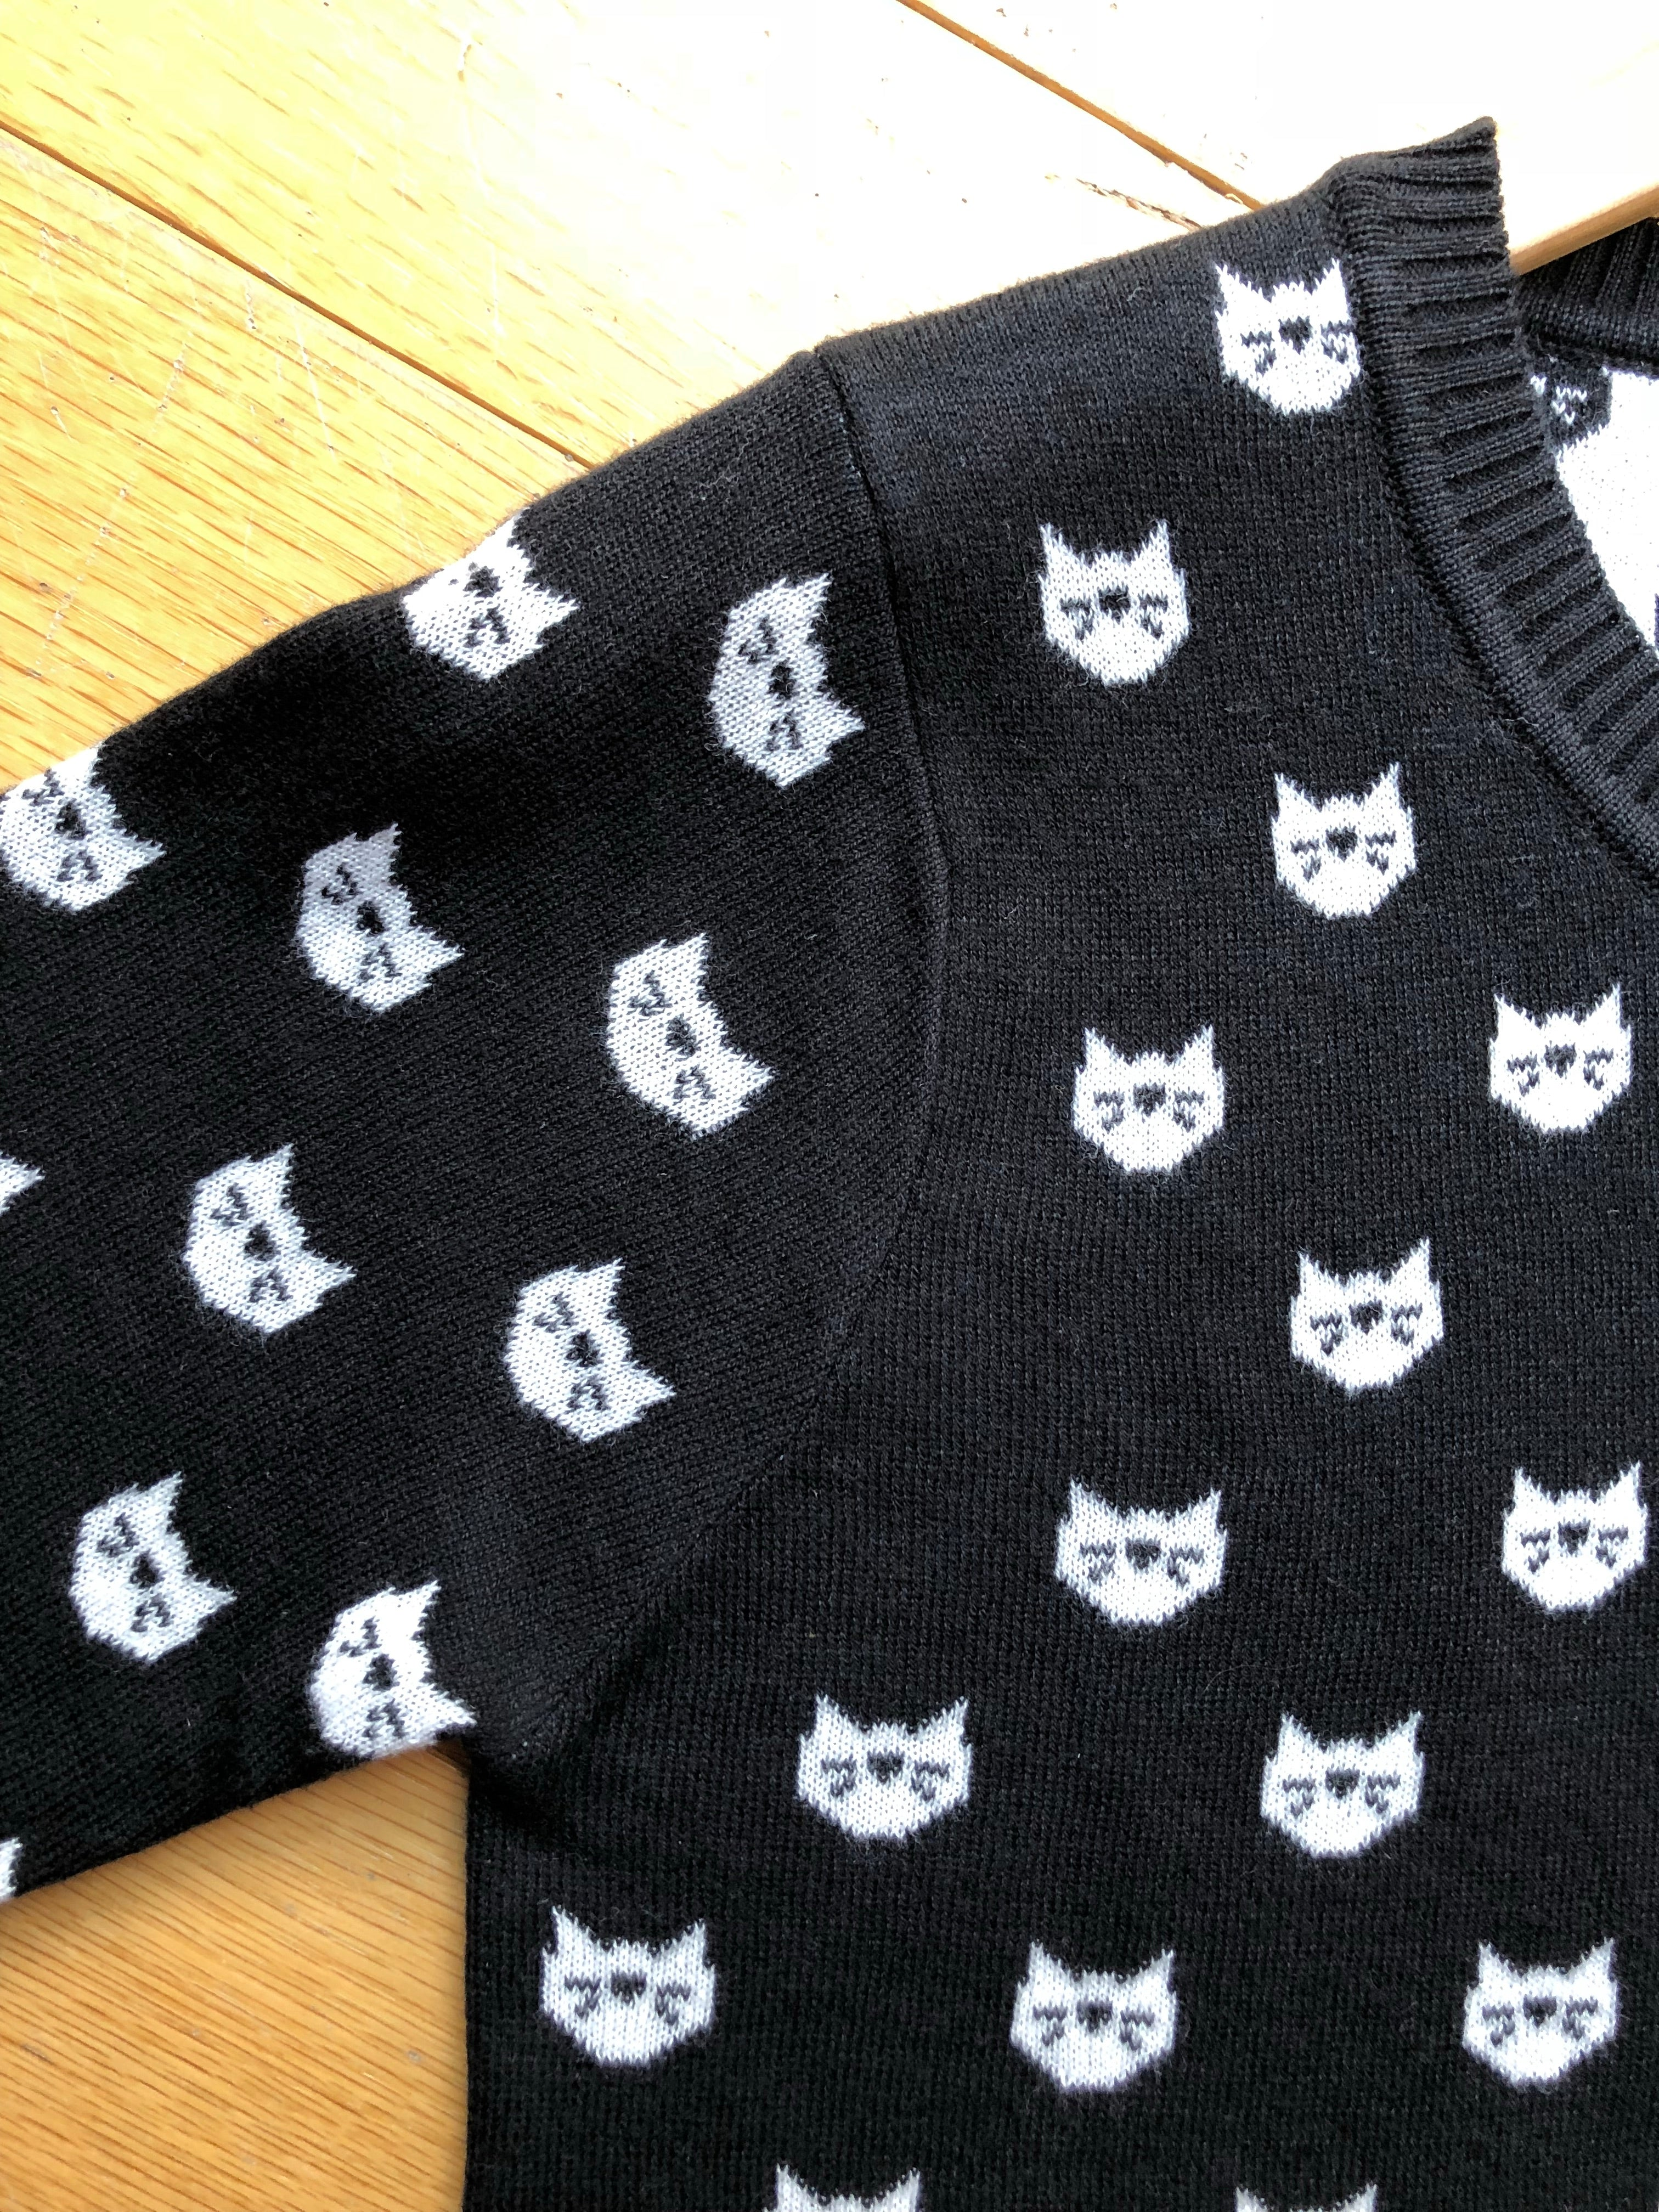 Cat Face Button Down Cardigan in Black & White by MAK